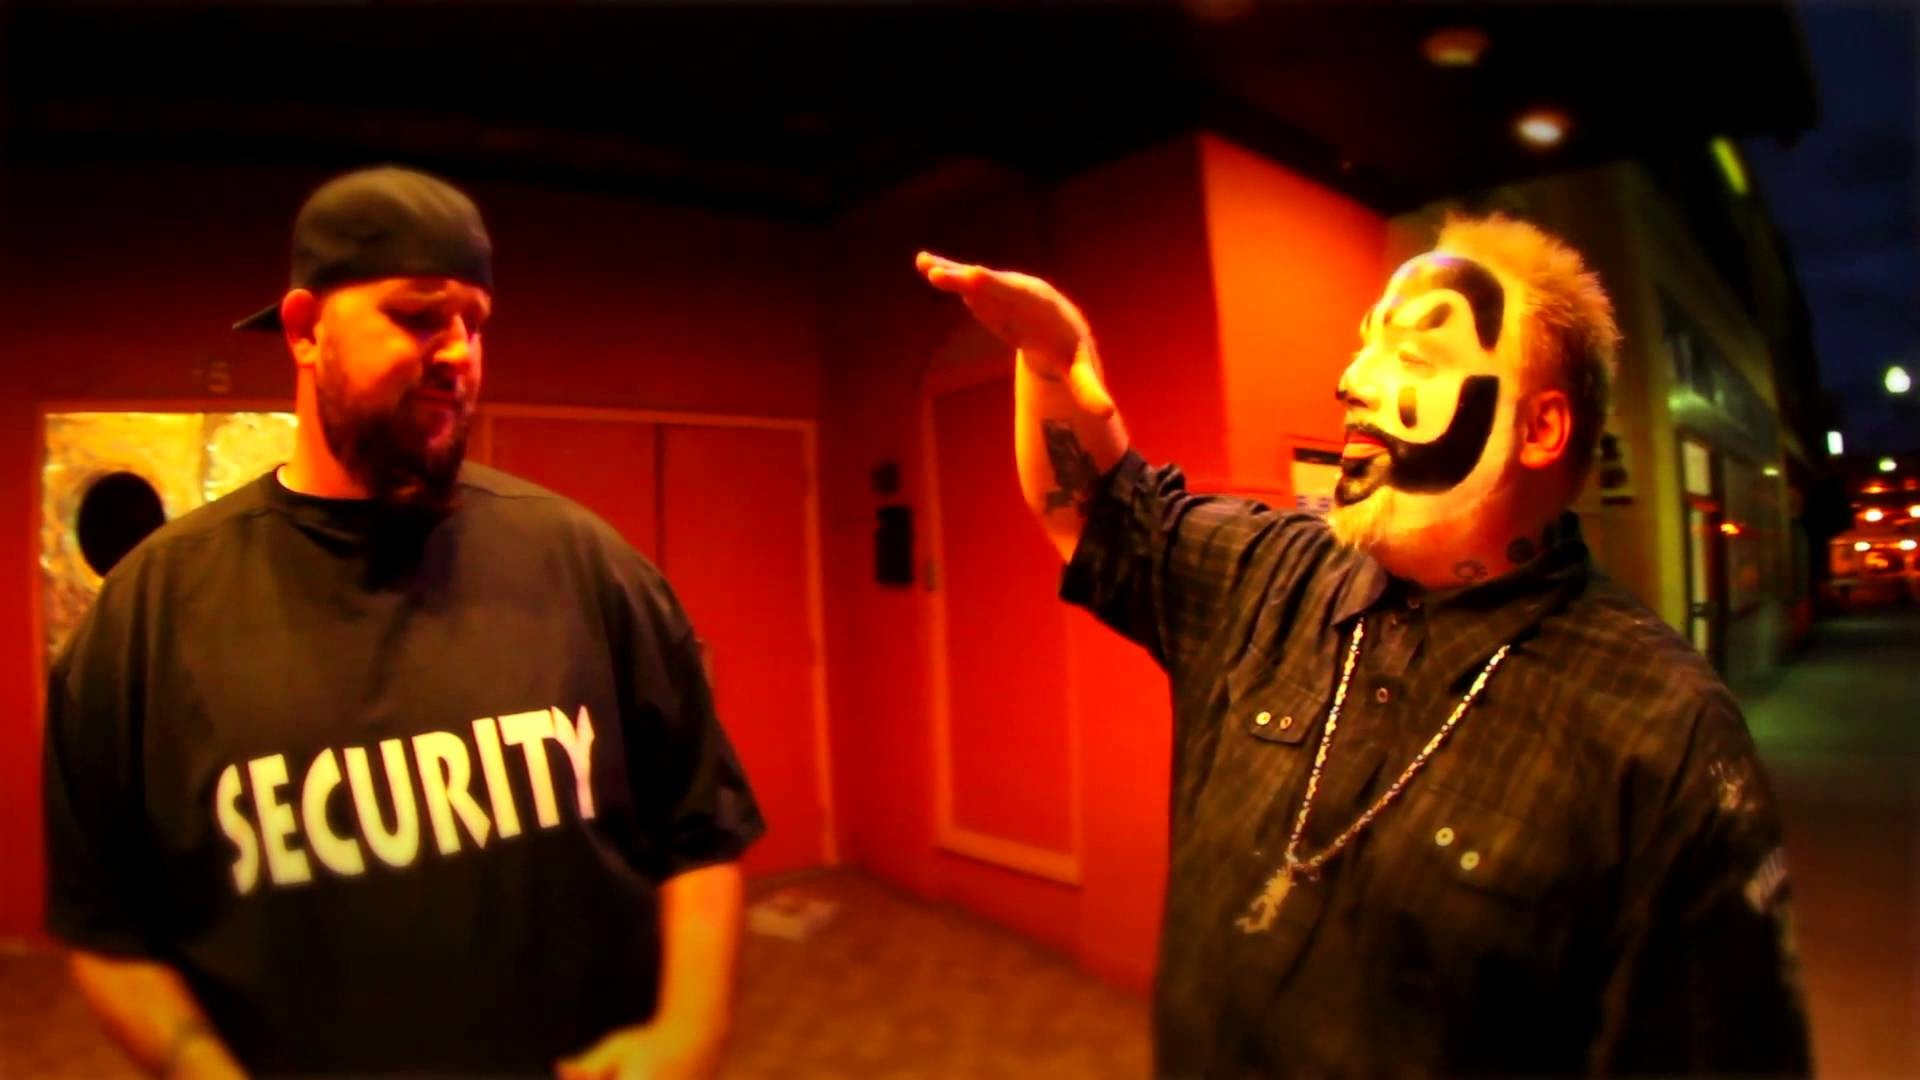 twiztid wallpapers hd 69 images